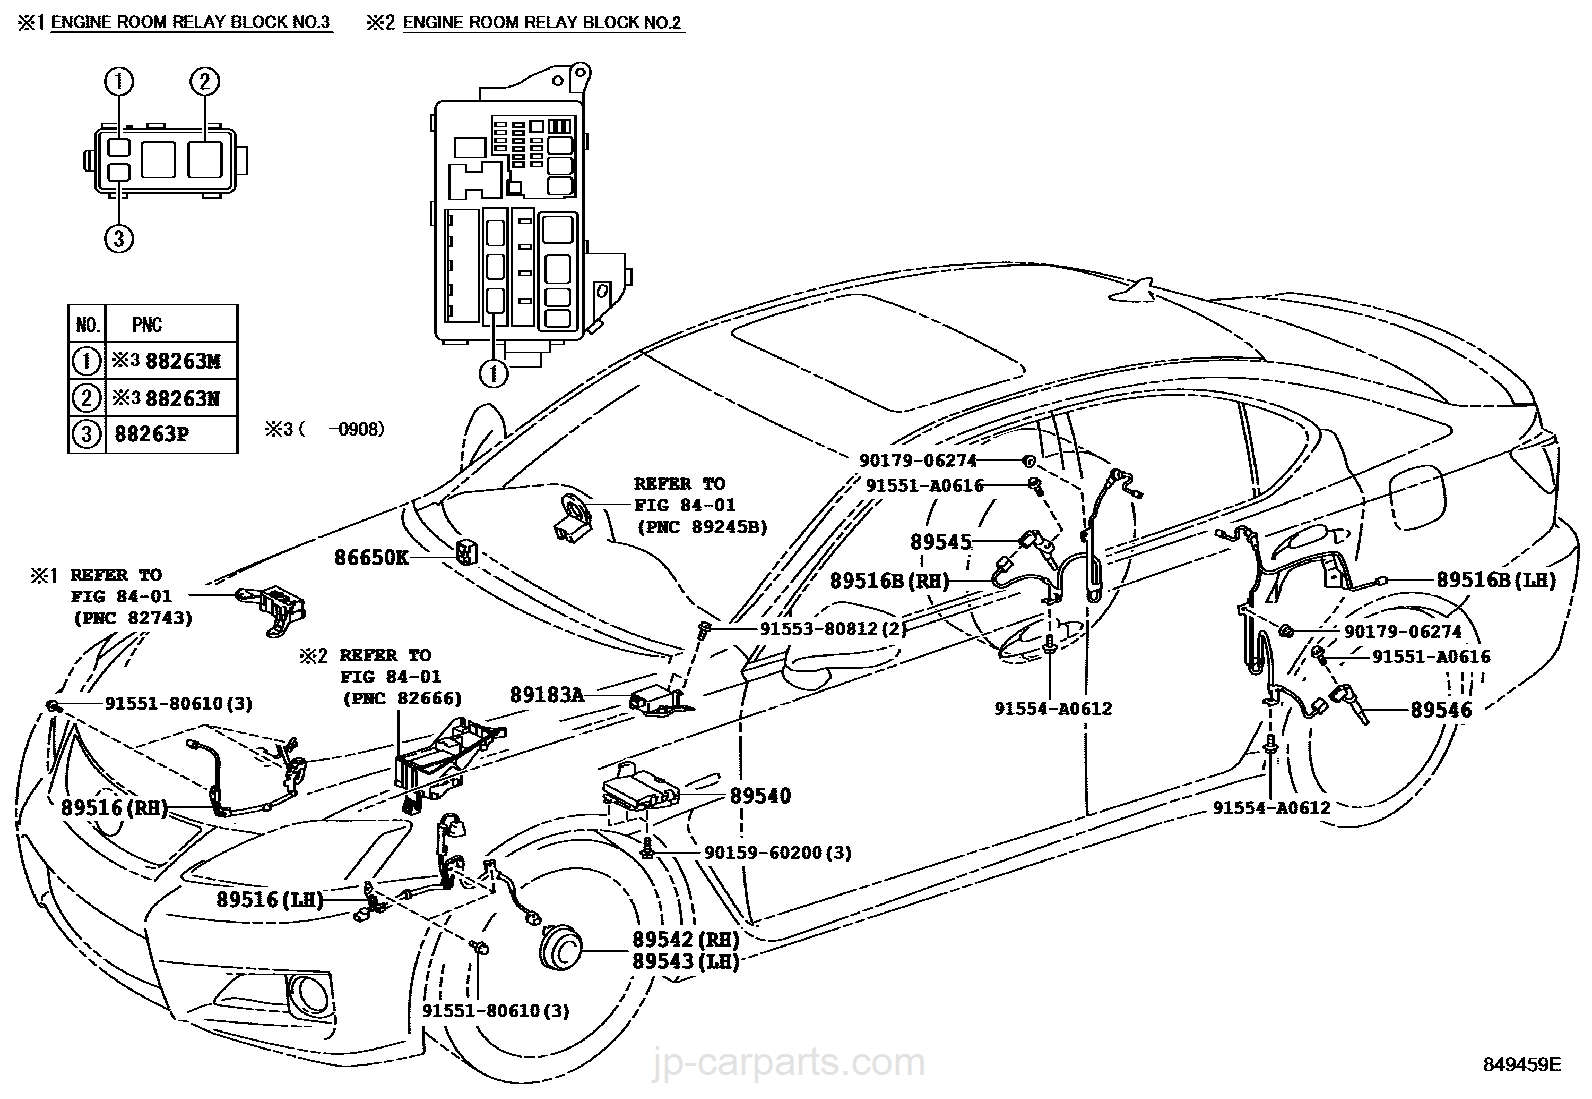 electrical wiring diagrams for motorcycles with Car Part Names And Diagrams on Showthread additionally Cbr250 Wiring Diagram additionally L5t100 wiring as well Honda Cb125s Chilton Electrical Wiring Diagram in addition Basic Car Wiring Diagram Light.